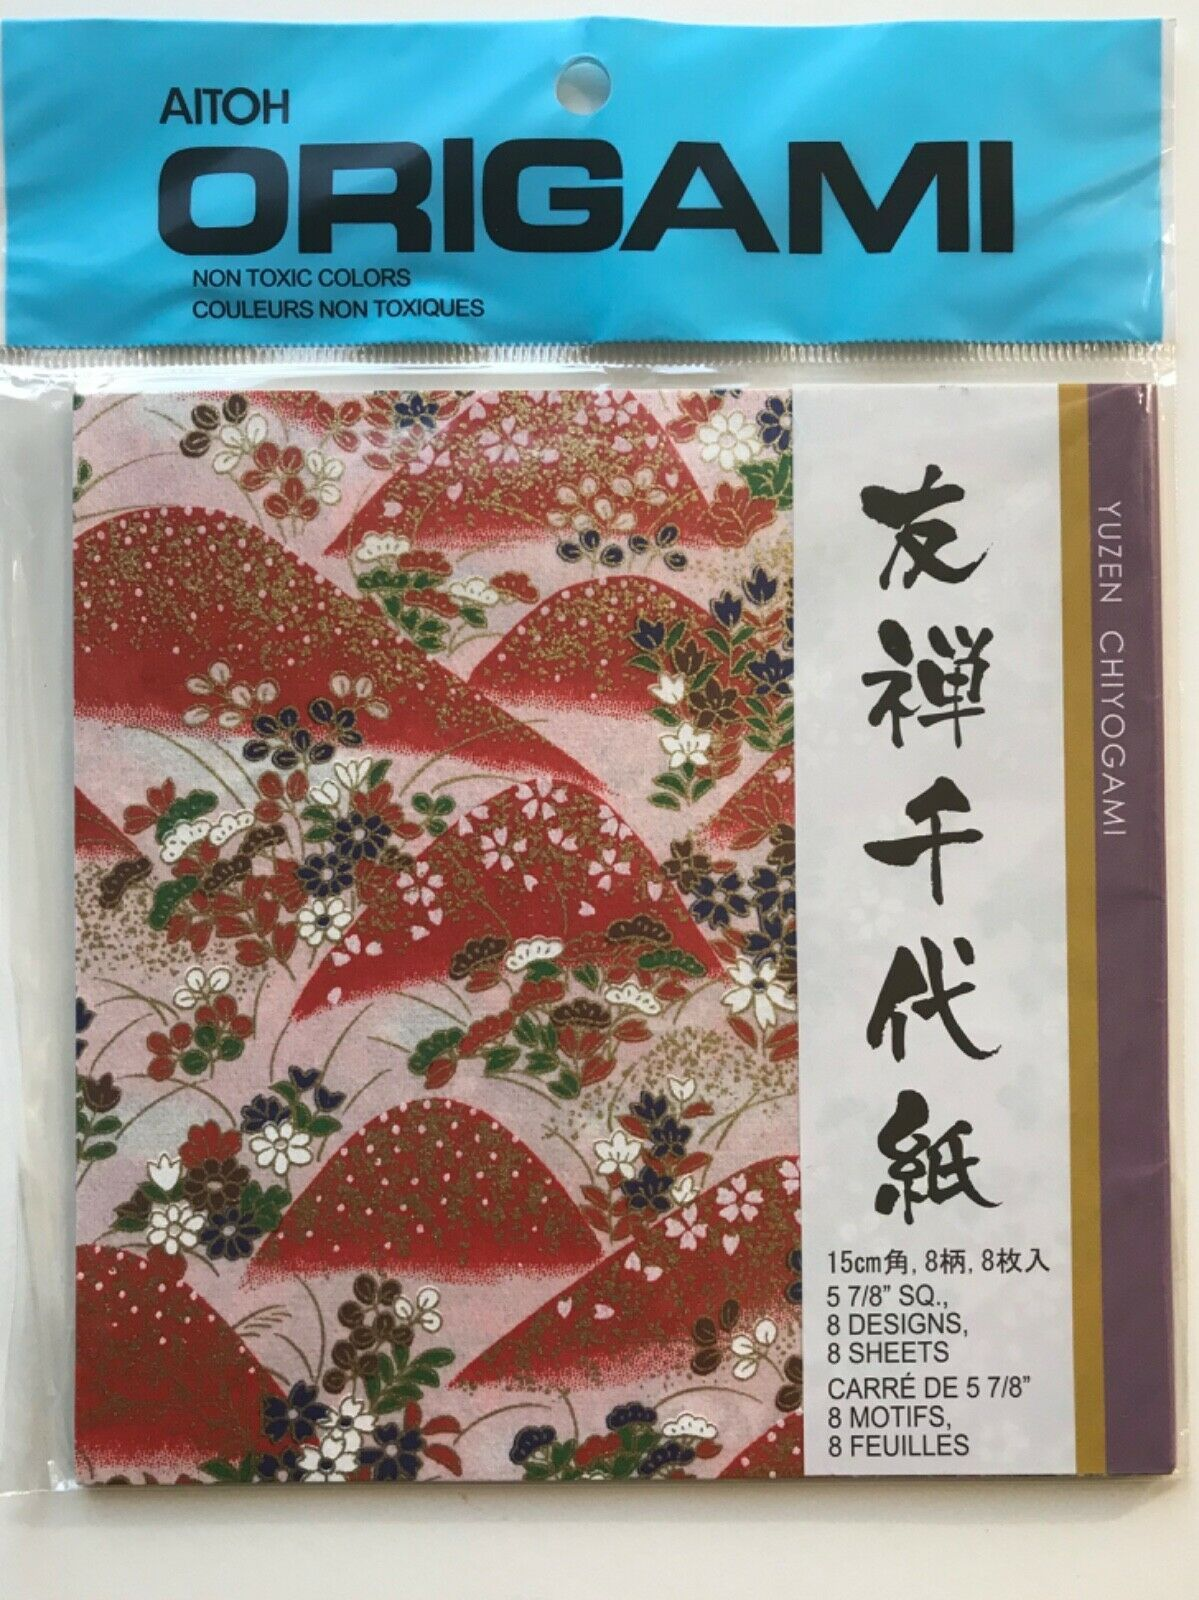 Primary image for Aitoh Origami Aizome Chiyogami Washi Paper 15 cm x 15 cm 8 Designs 8 Sheets